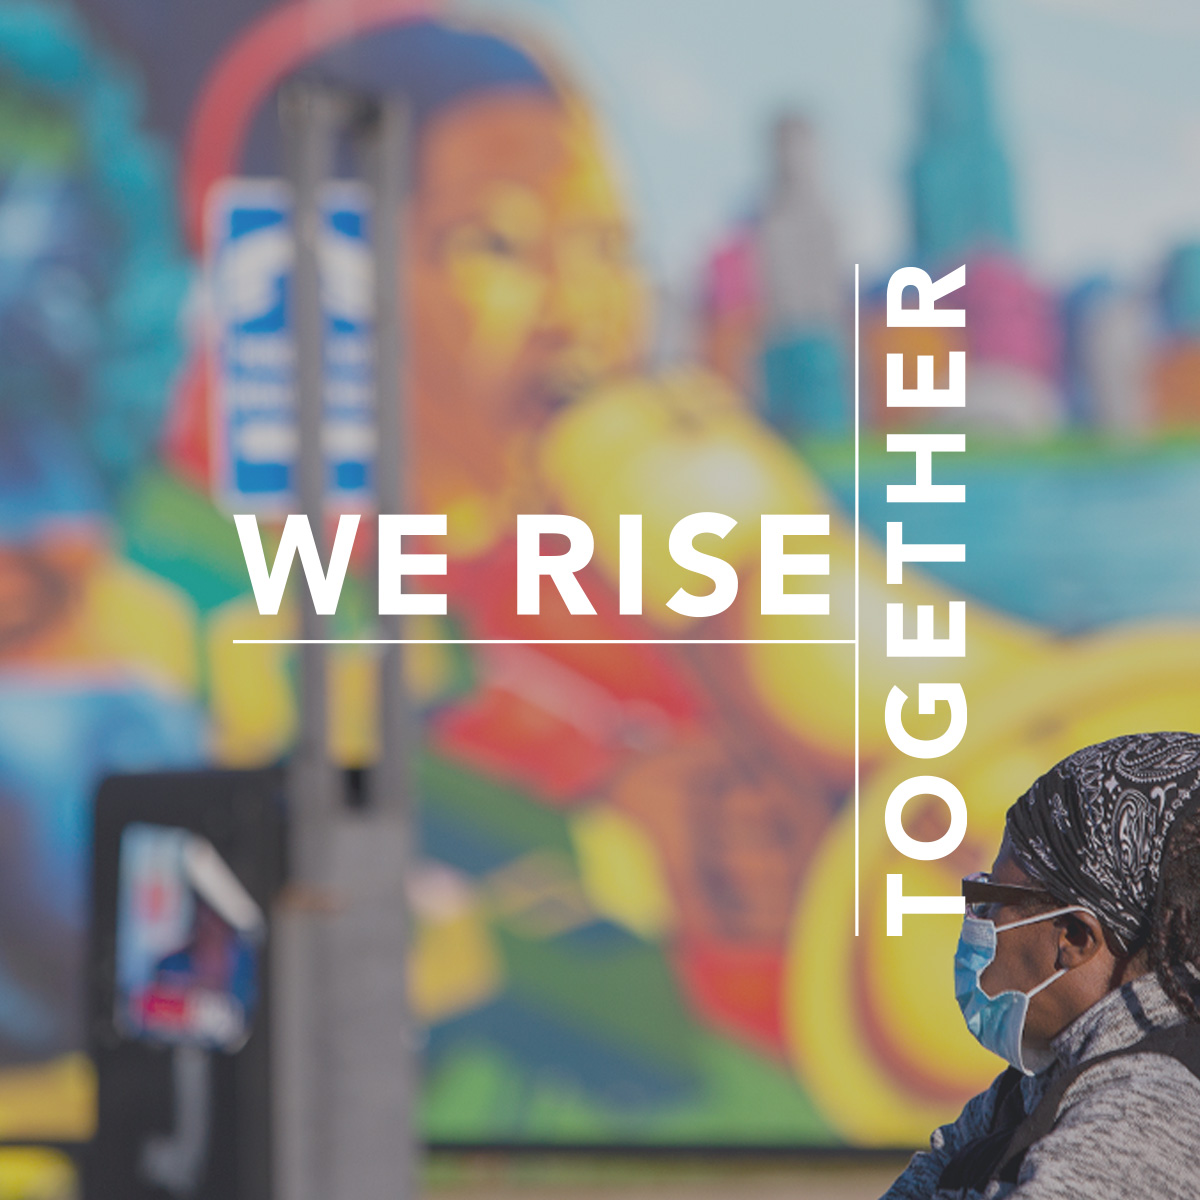 We rise together. Photo shows a black woman in a mask in front of a colorful mural.